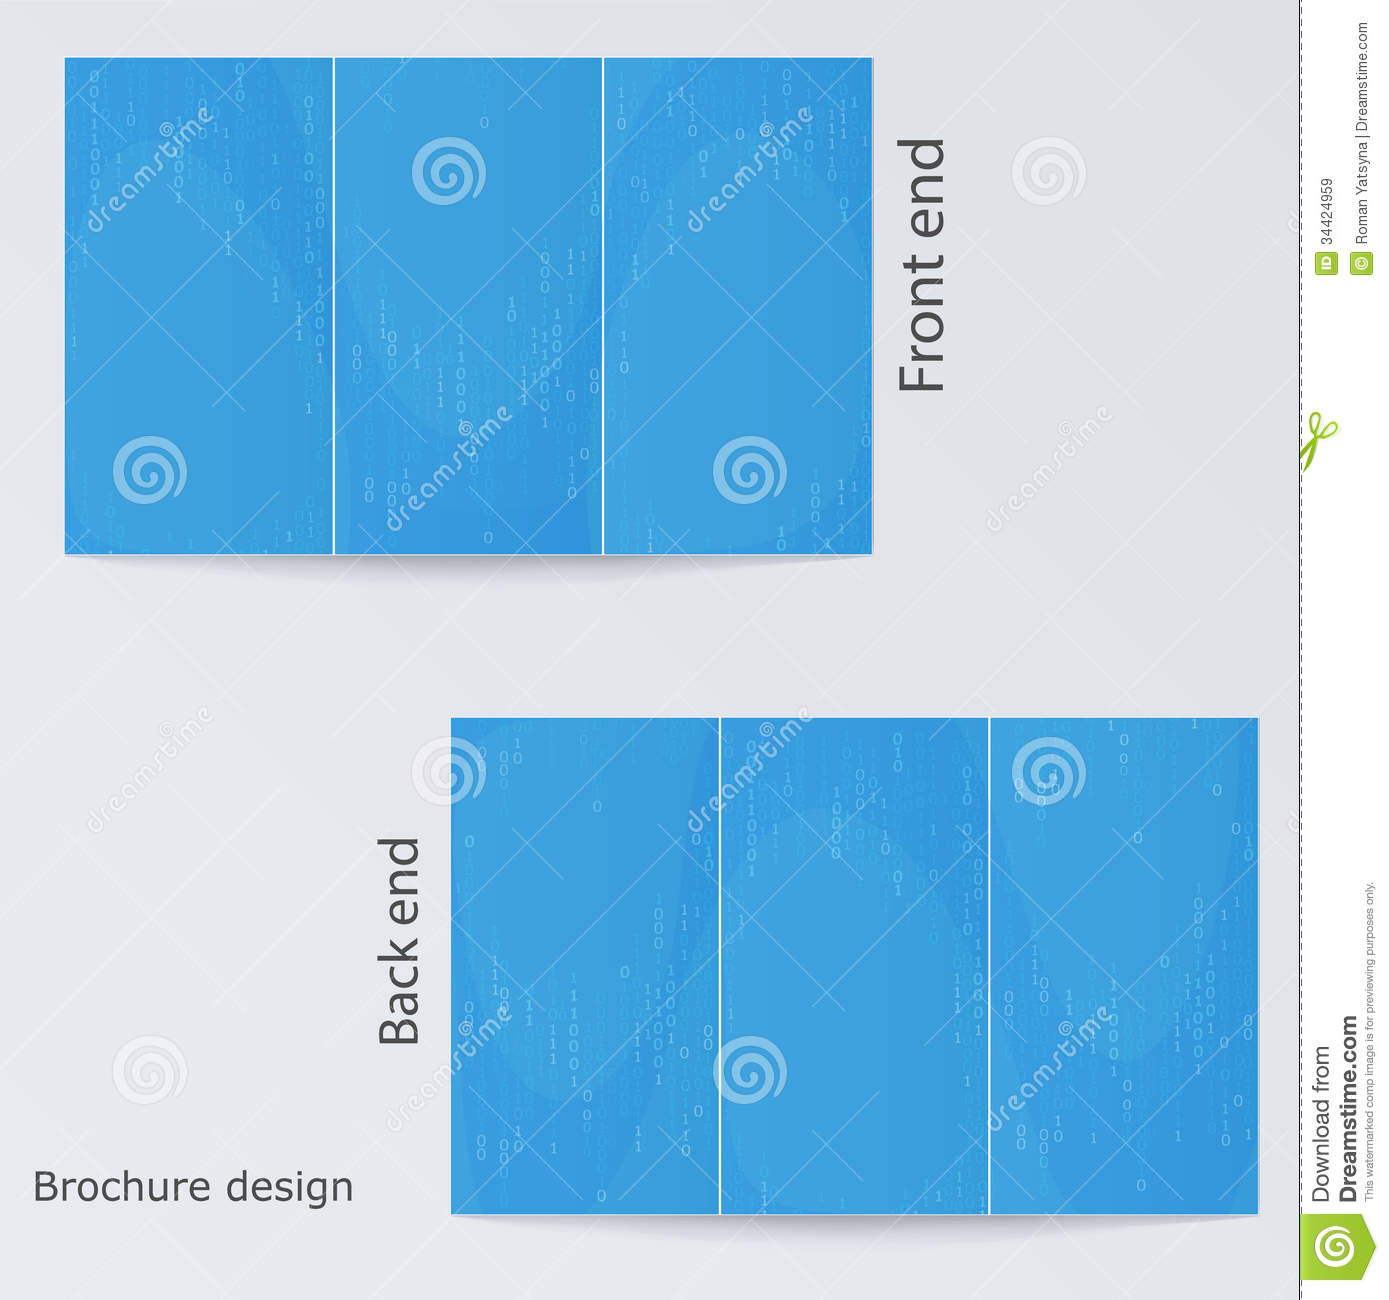 Blue Brochure Template Design. Royalty Free Stock Images - Image: 34424959